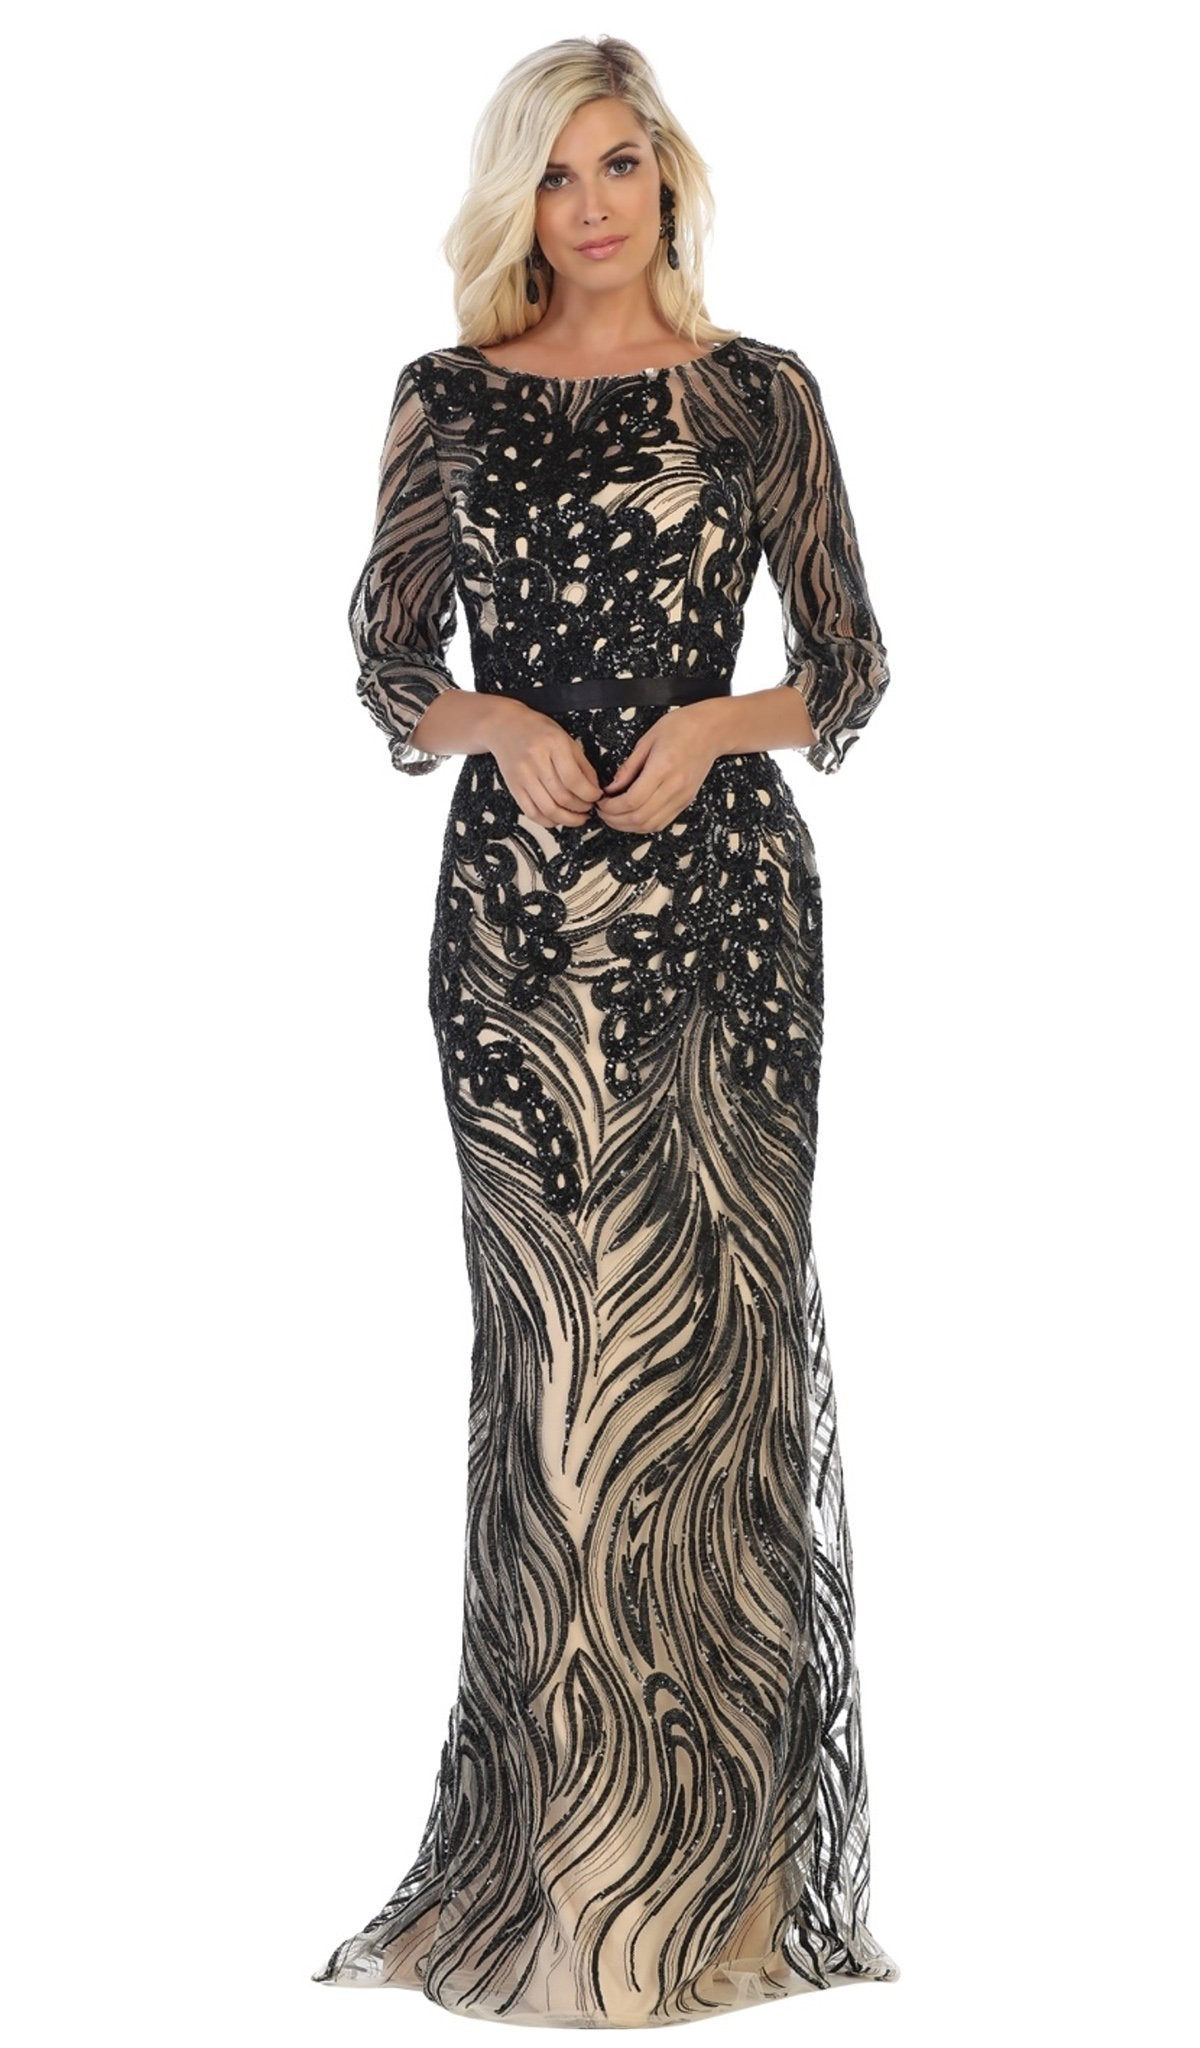 May Queen - Embellished Bateau Sheath Evening Dress RQ7686 In Black and Neutral